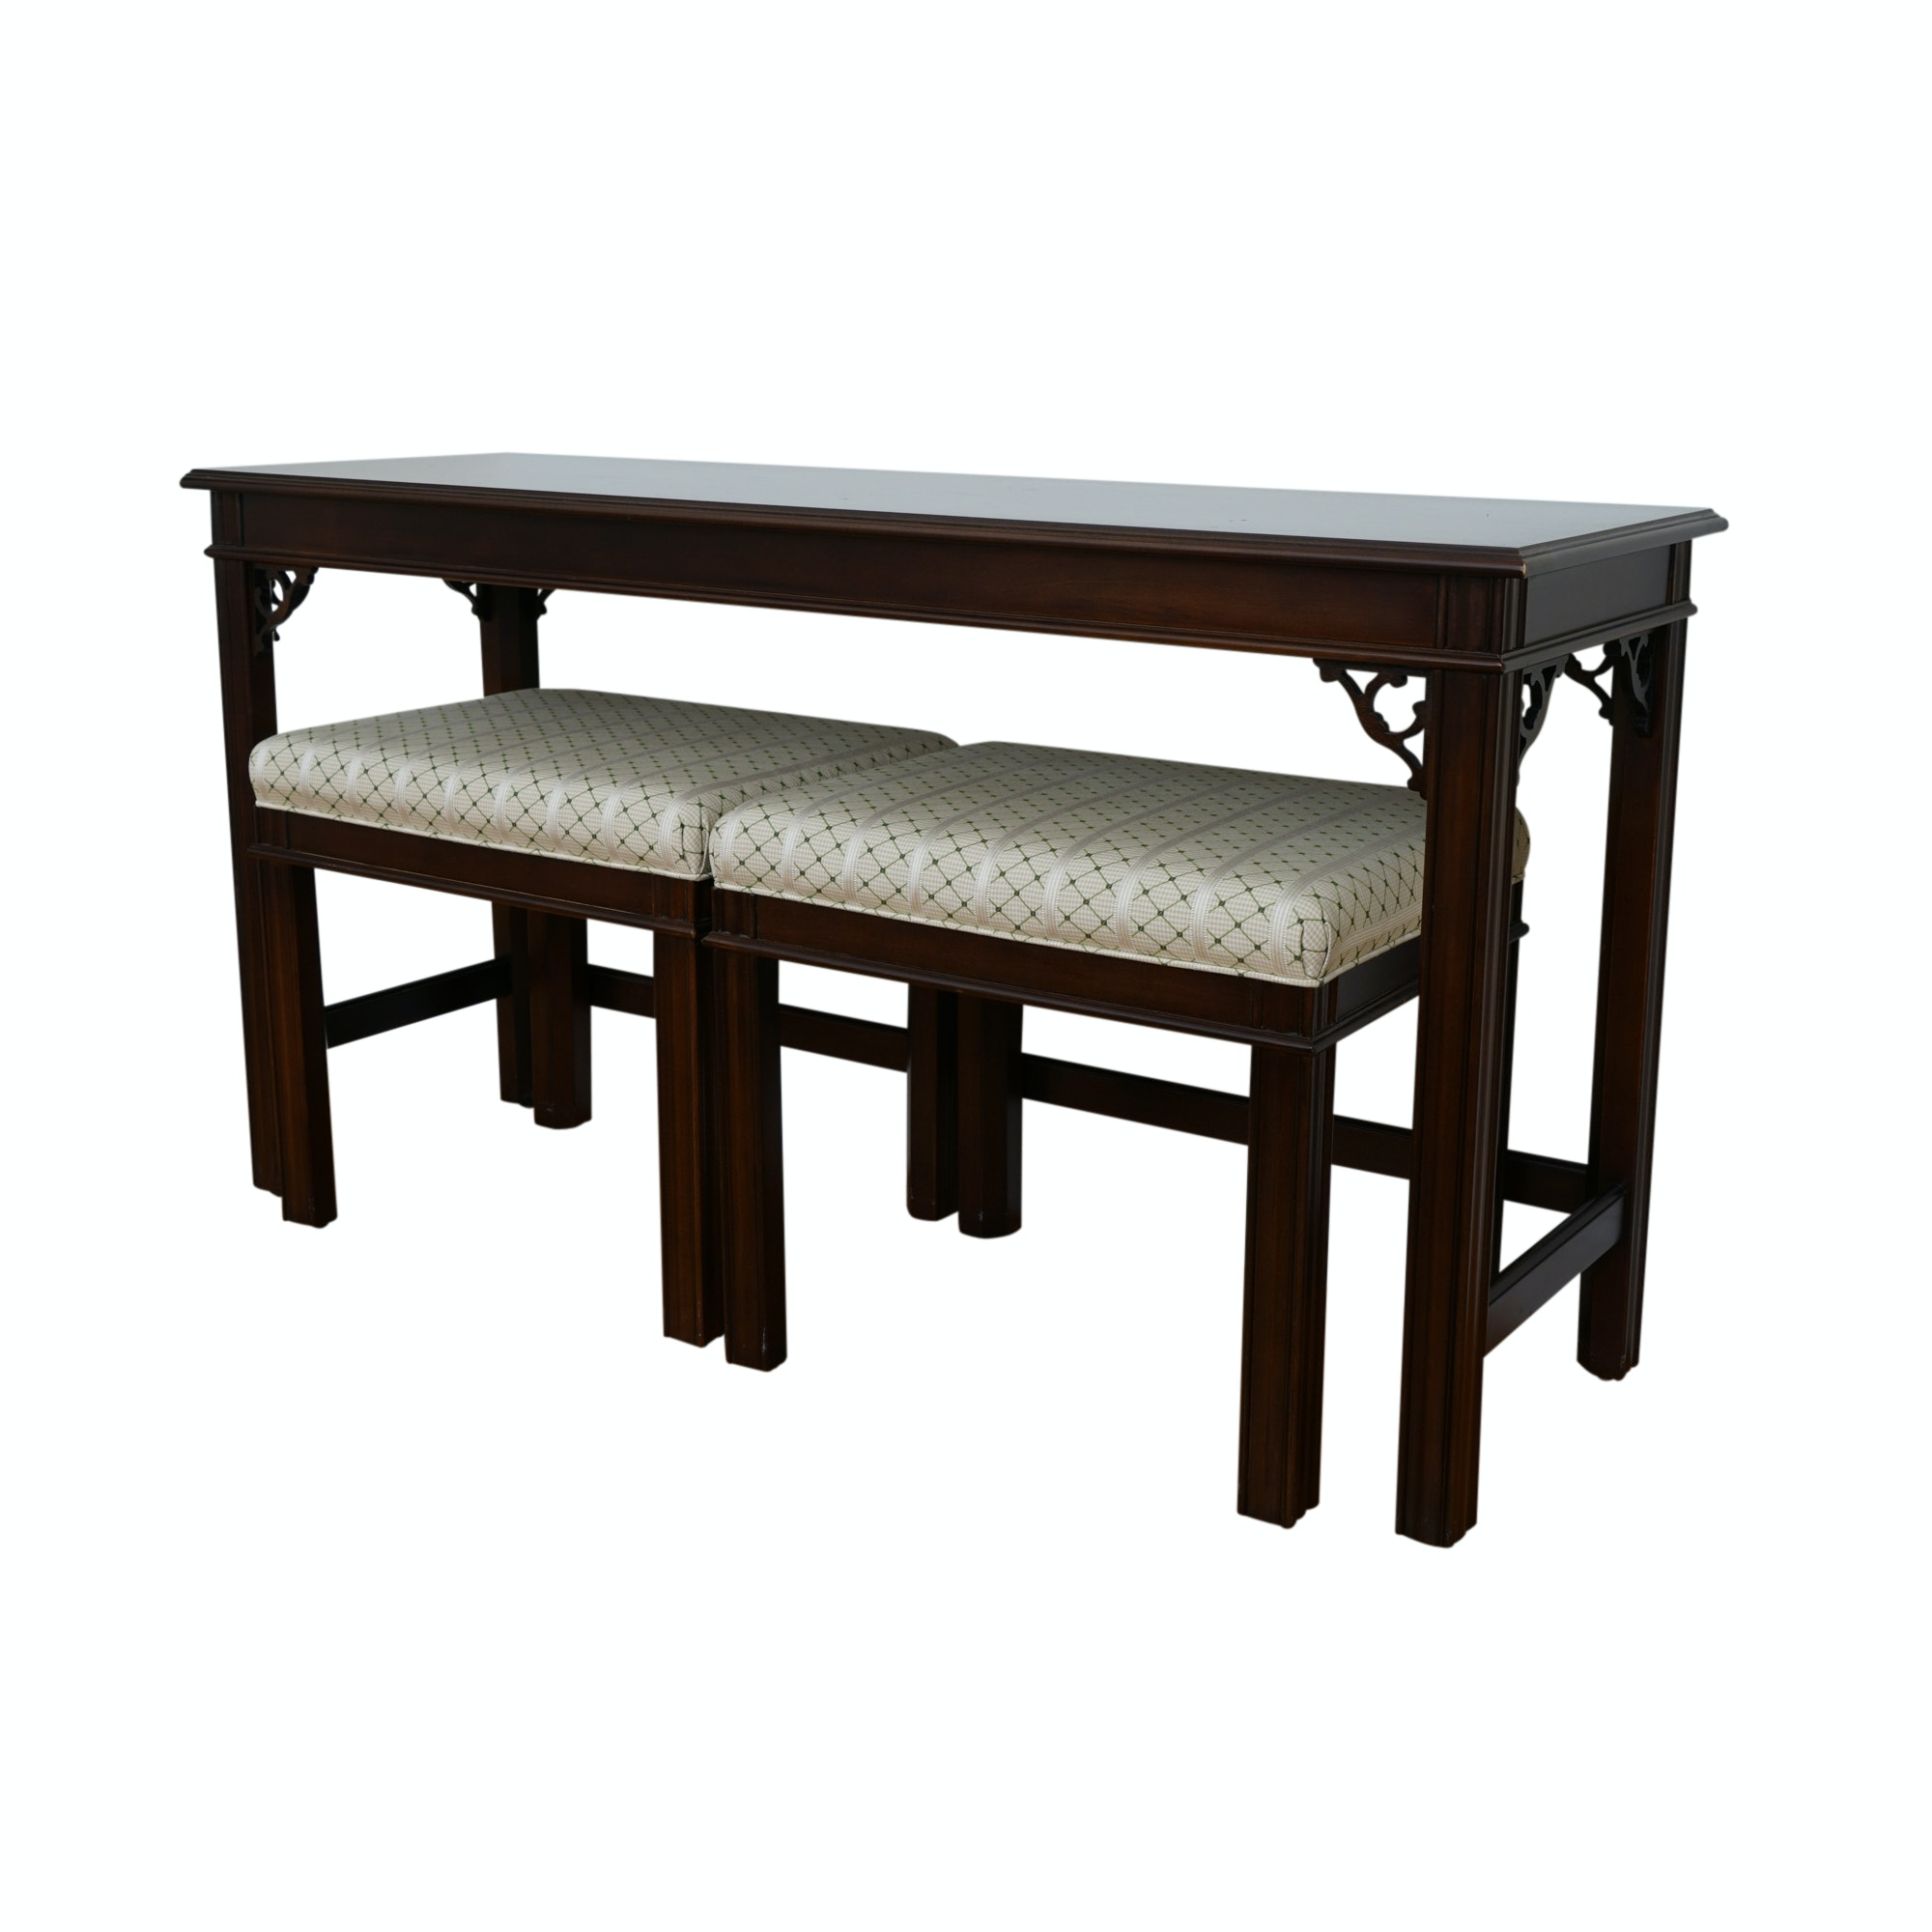 Chippendale Style Console Table and Nesting Stools by Sherrill